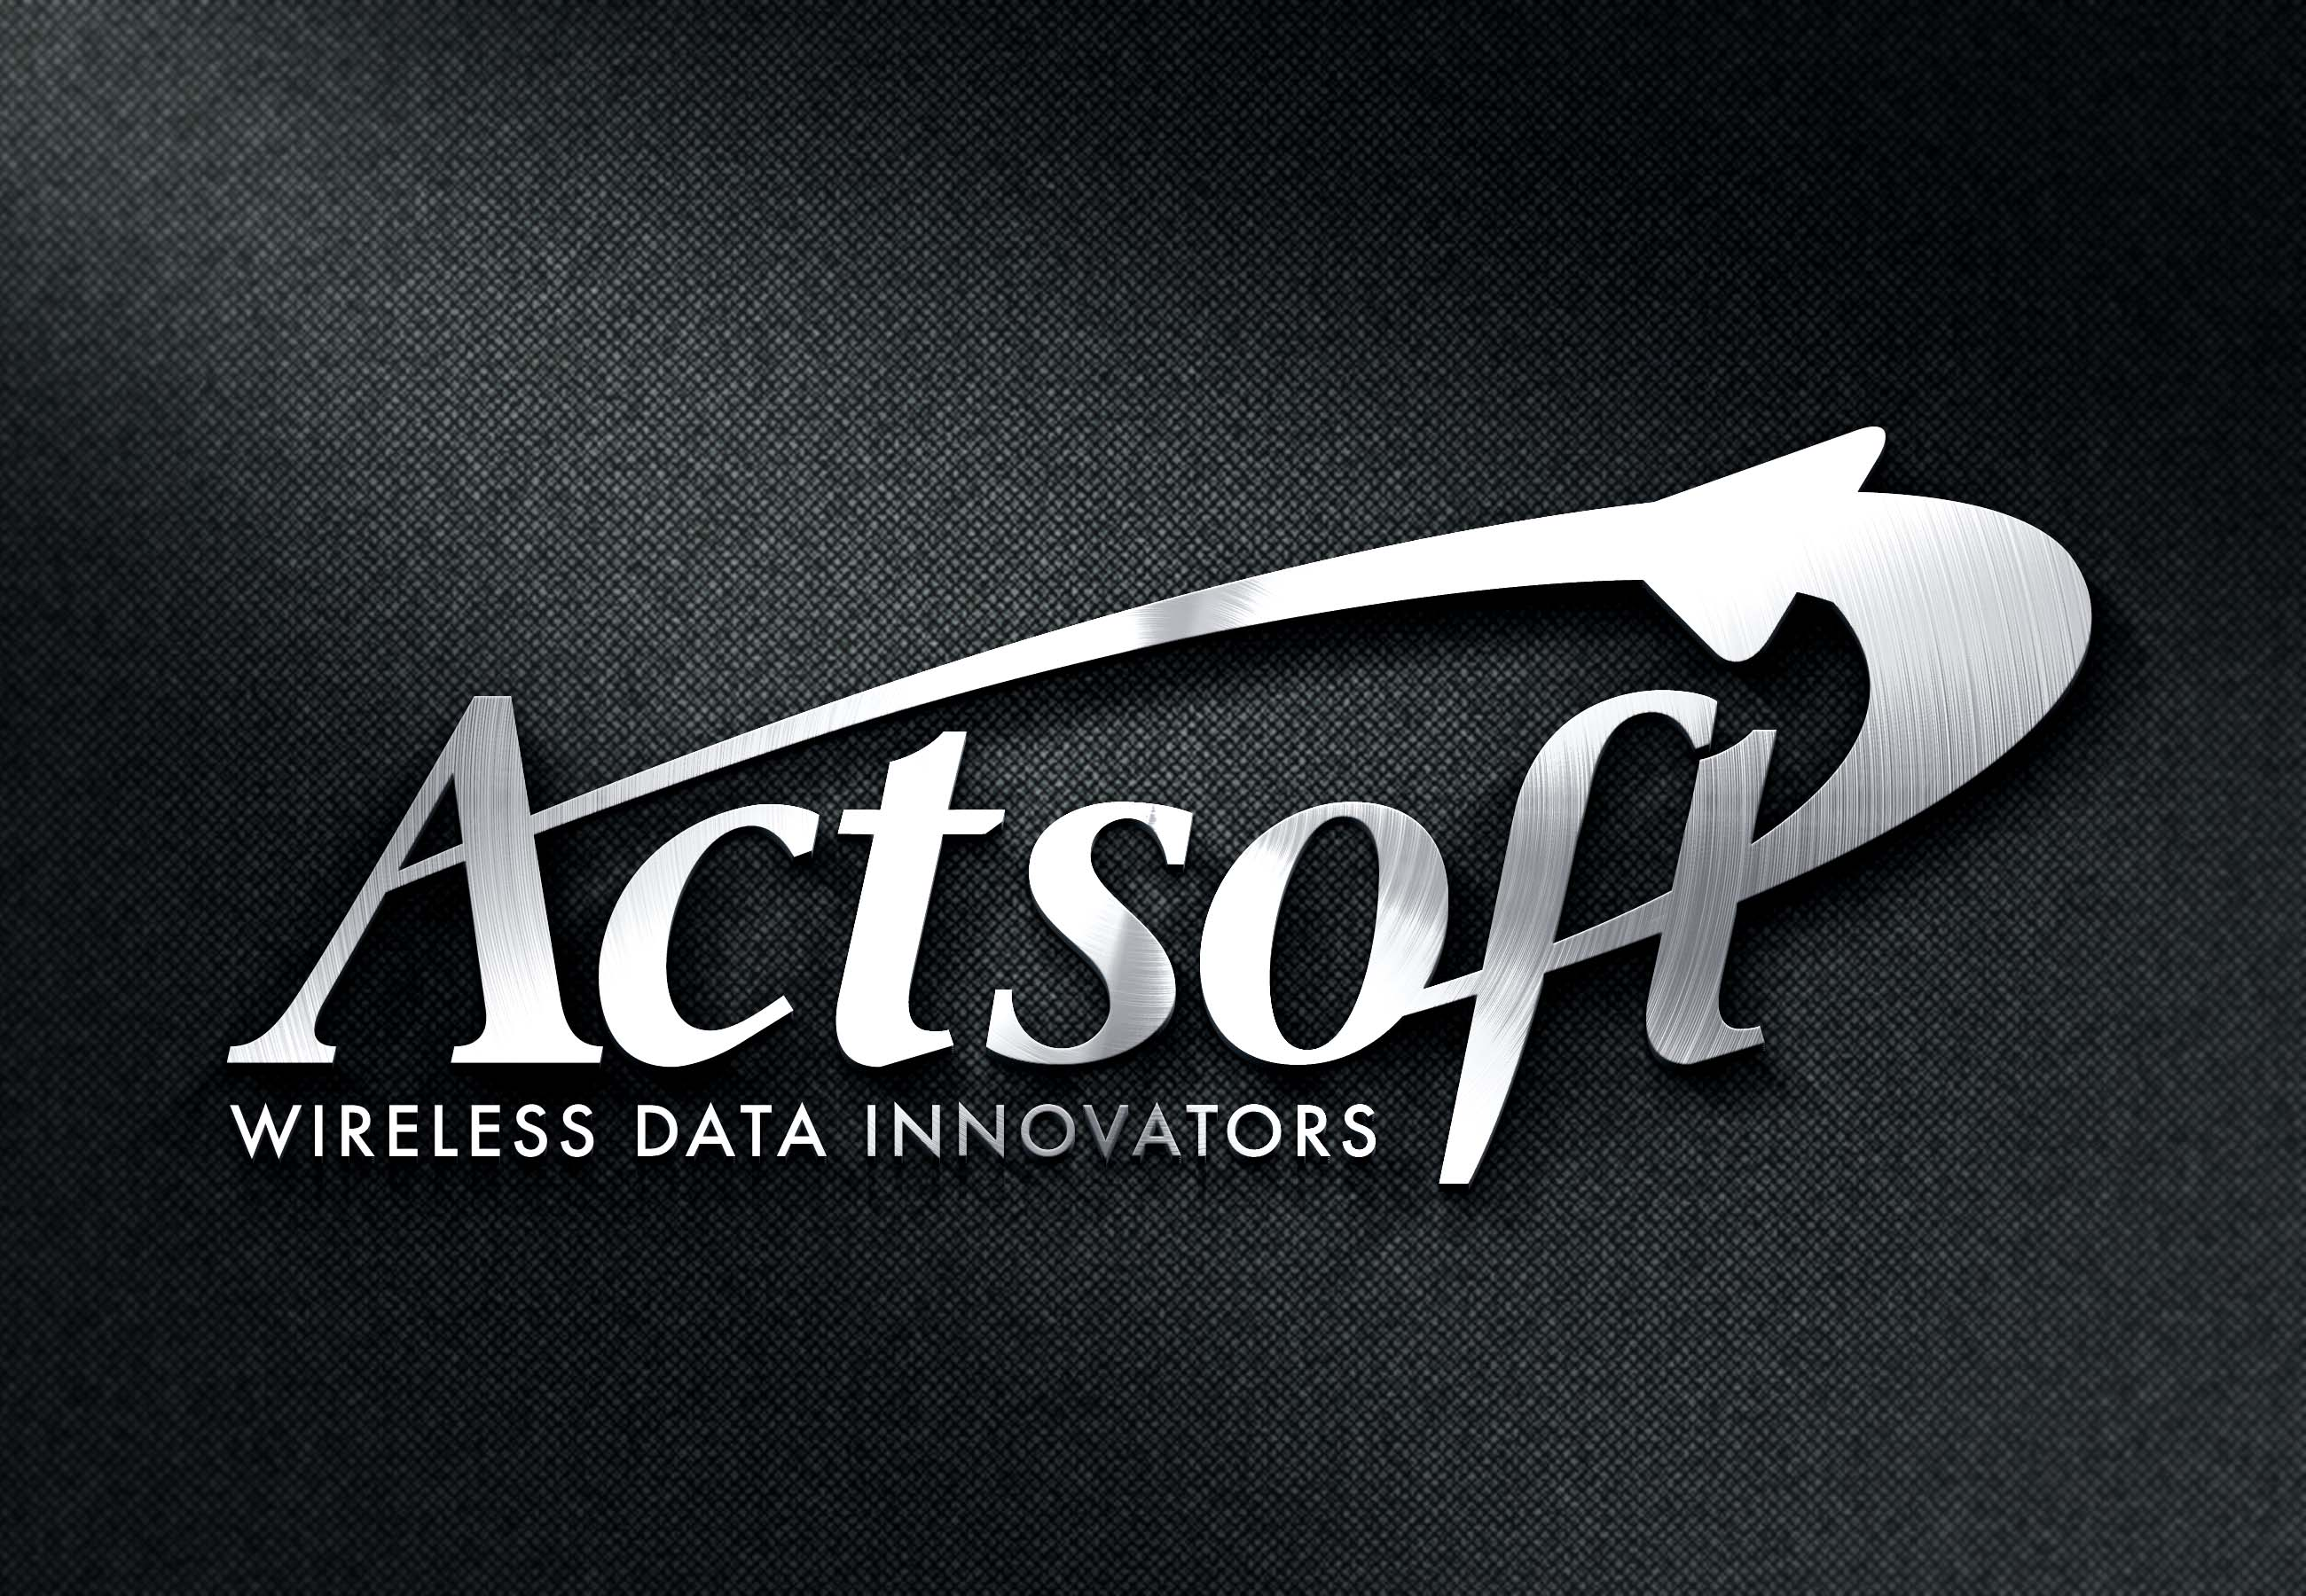 actsoft logo sign